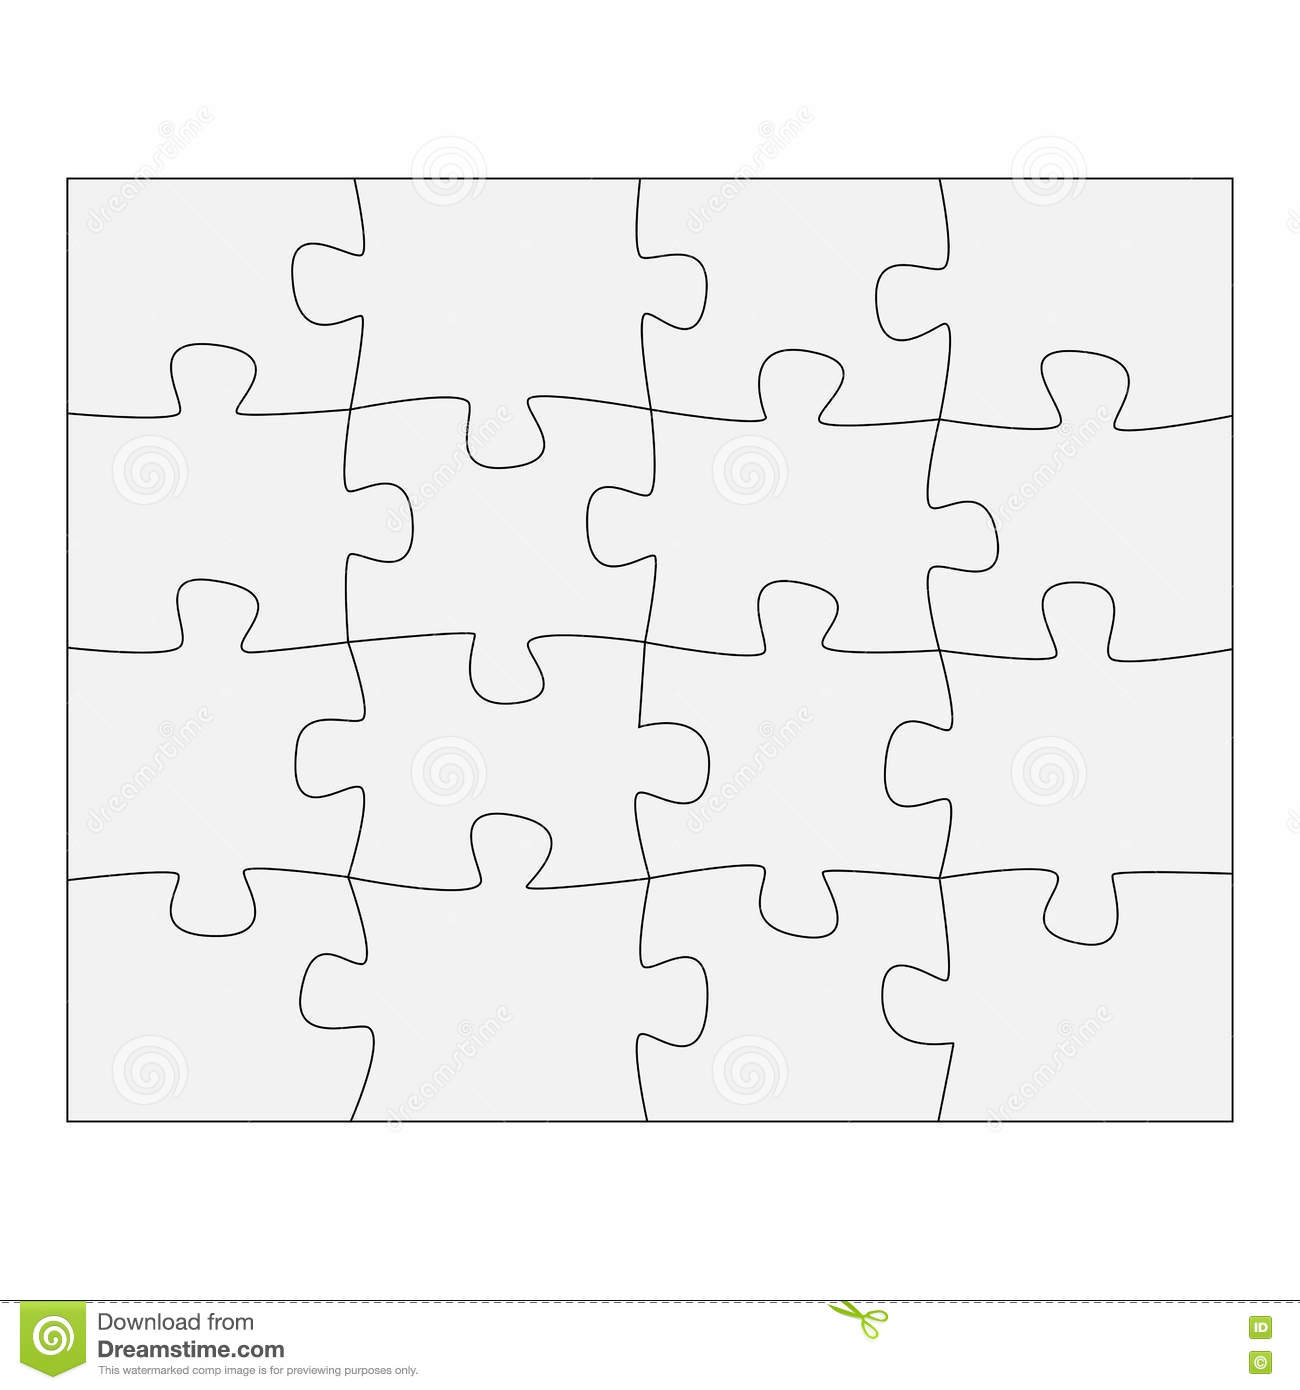 Template Paper For Thinking Puzzles Games Business Concept - Game concept template